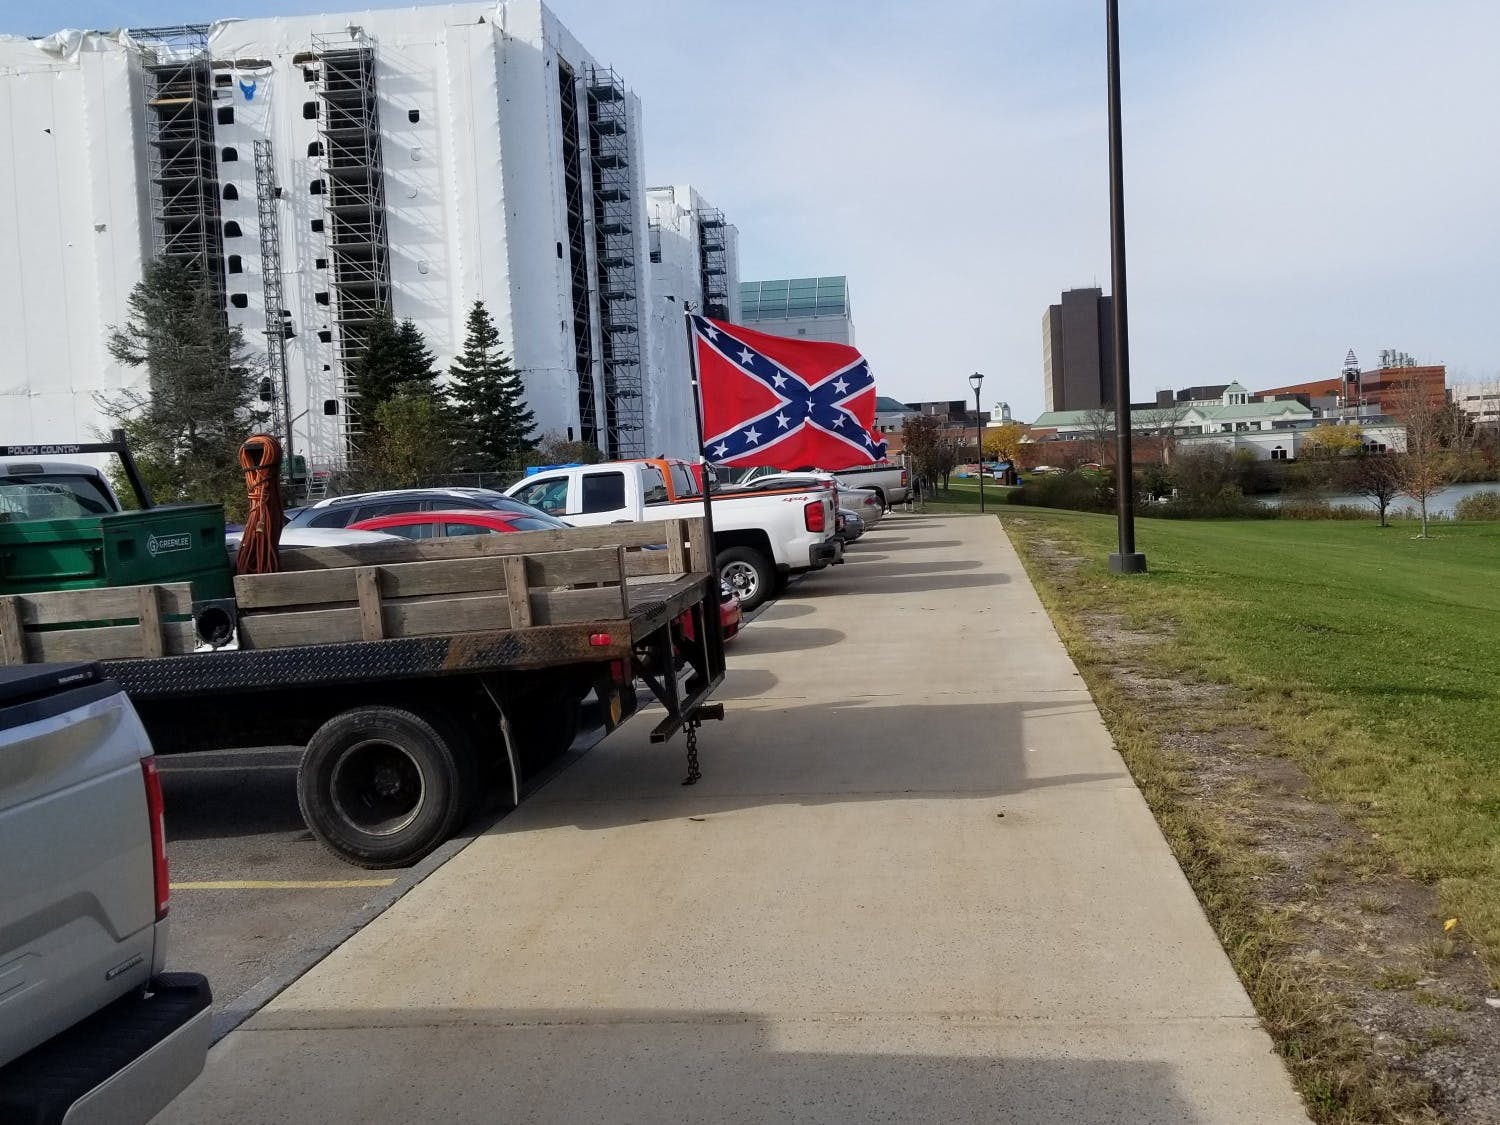 The Confederate Flag was displayed on the back of a Dodge truck on Monday. The truck is owned by a worker on the $12 million CFA construction project.